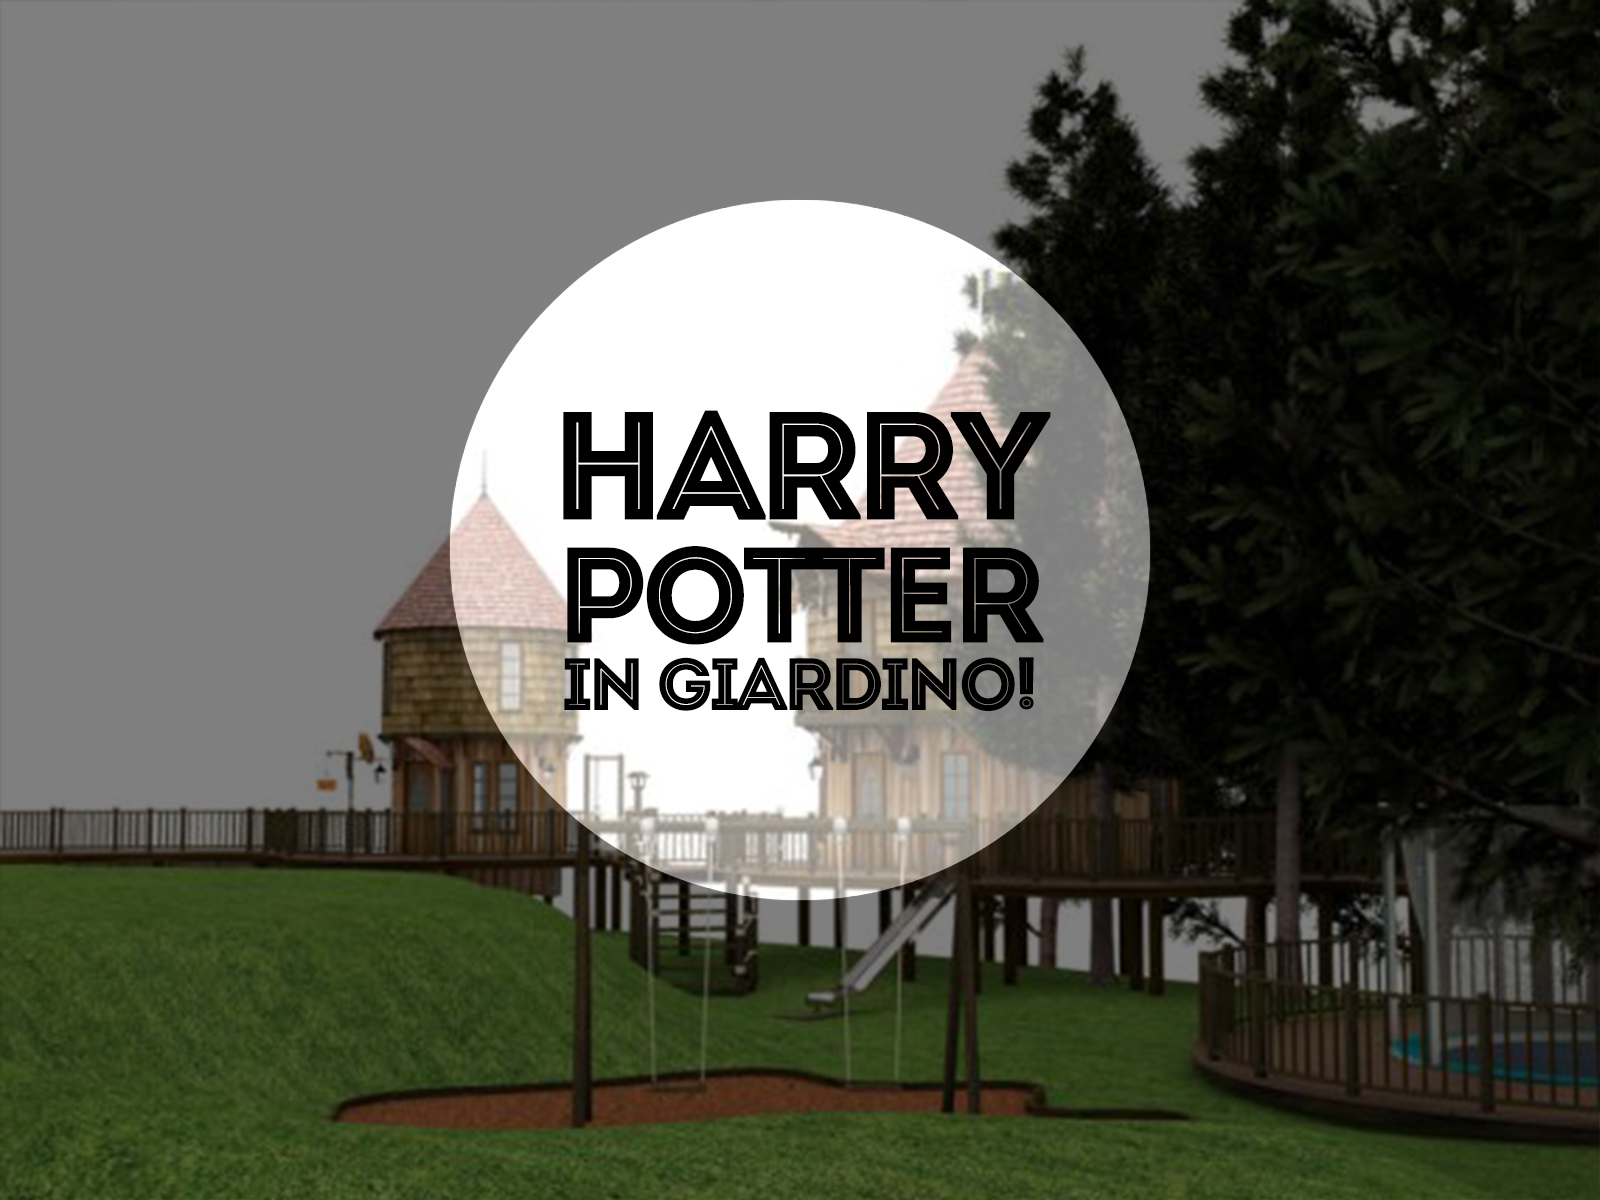 Harry Potter in giardino